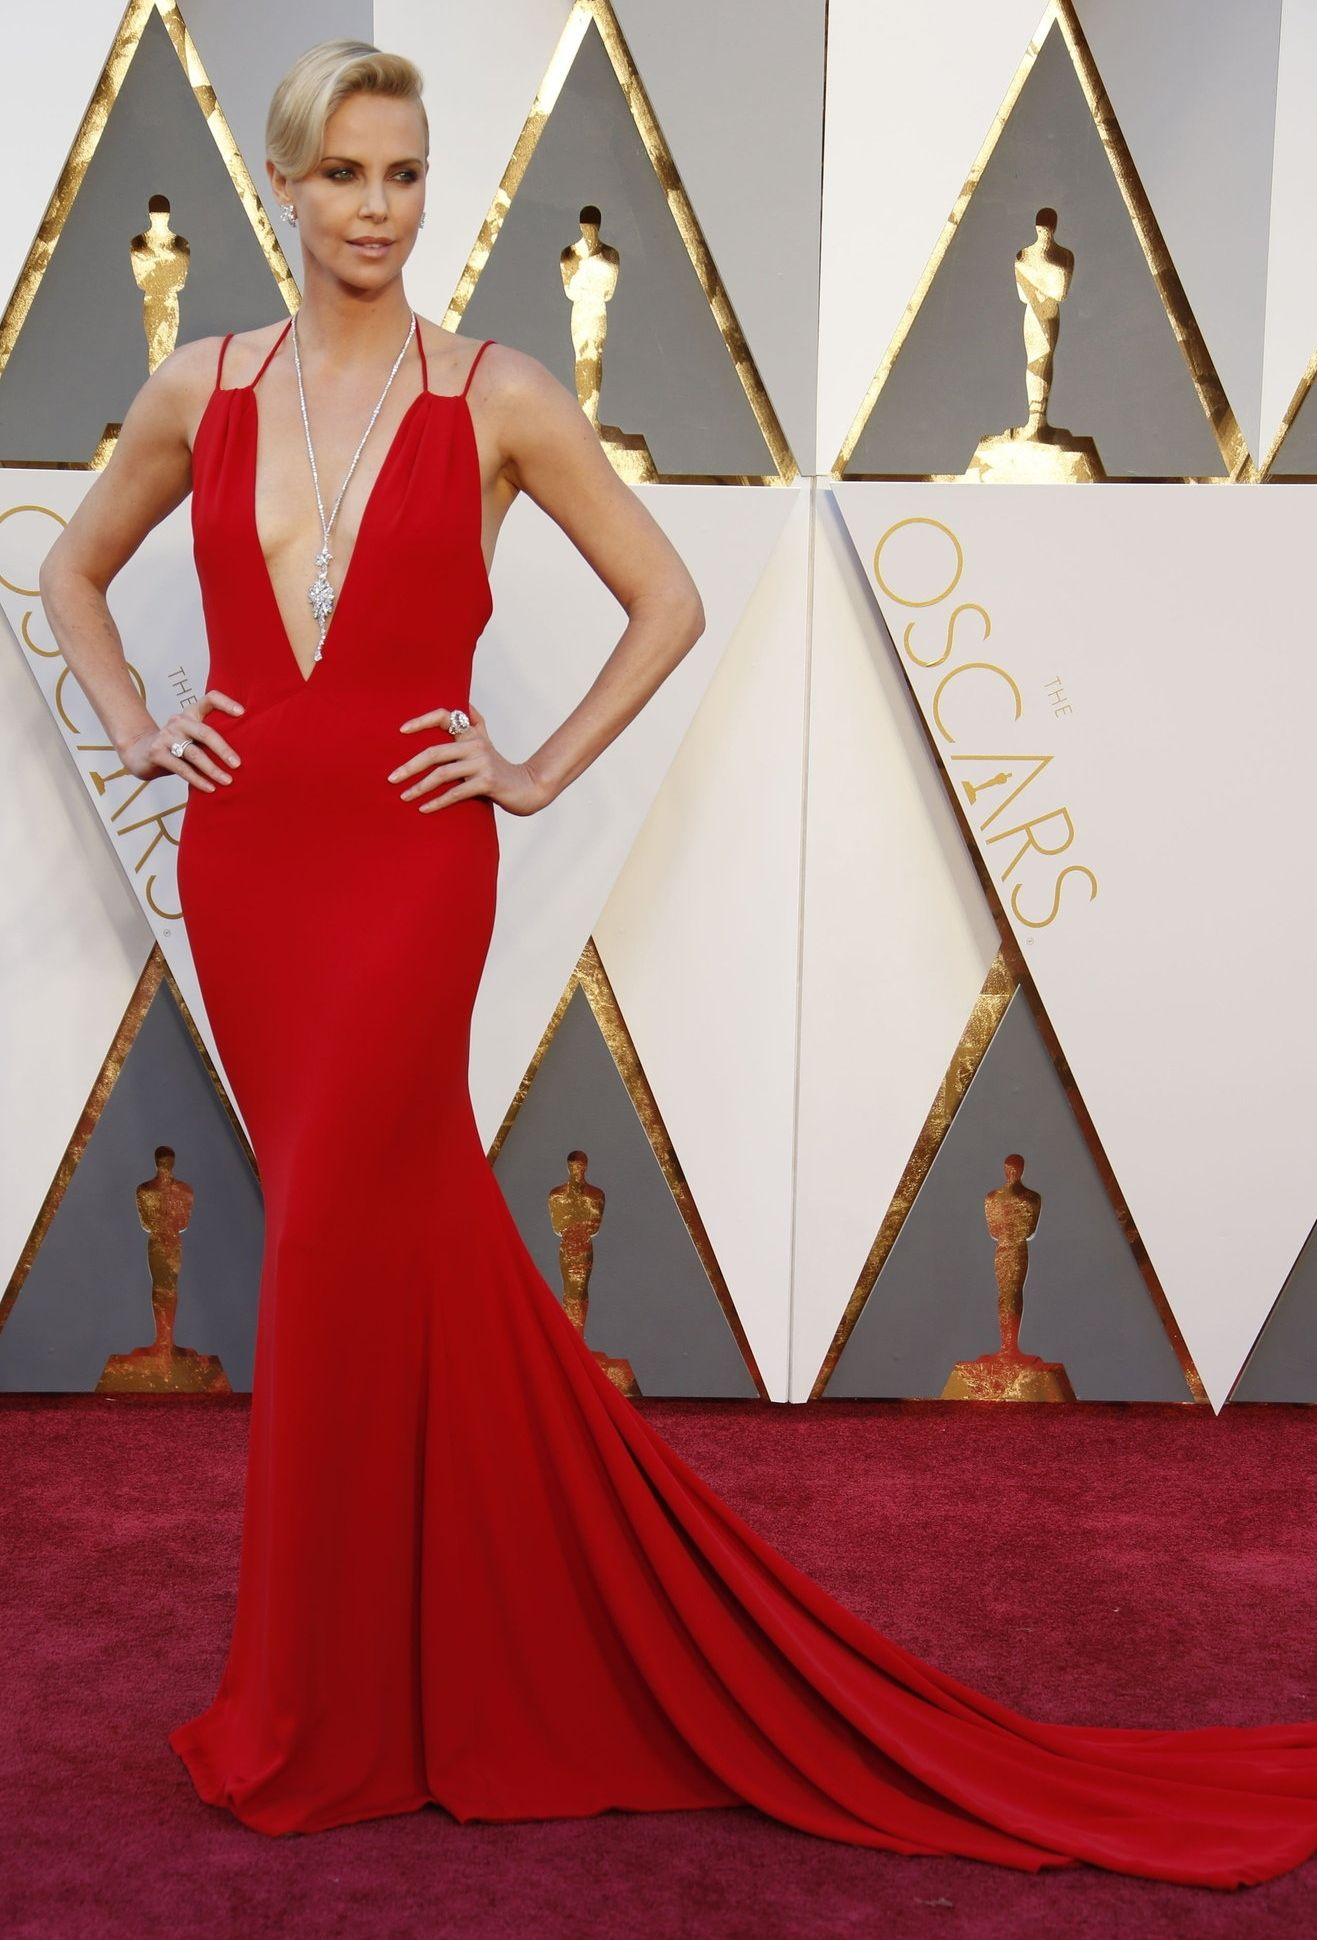 Charlize Theron on the Oscars red carpet (Photo  Noel West for The New York  Times) e096737845c